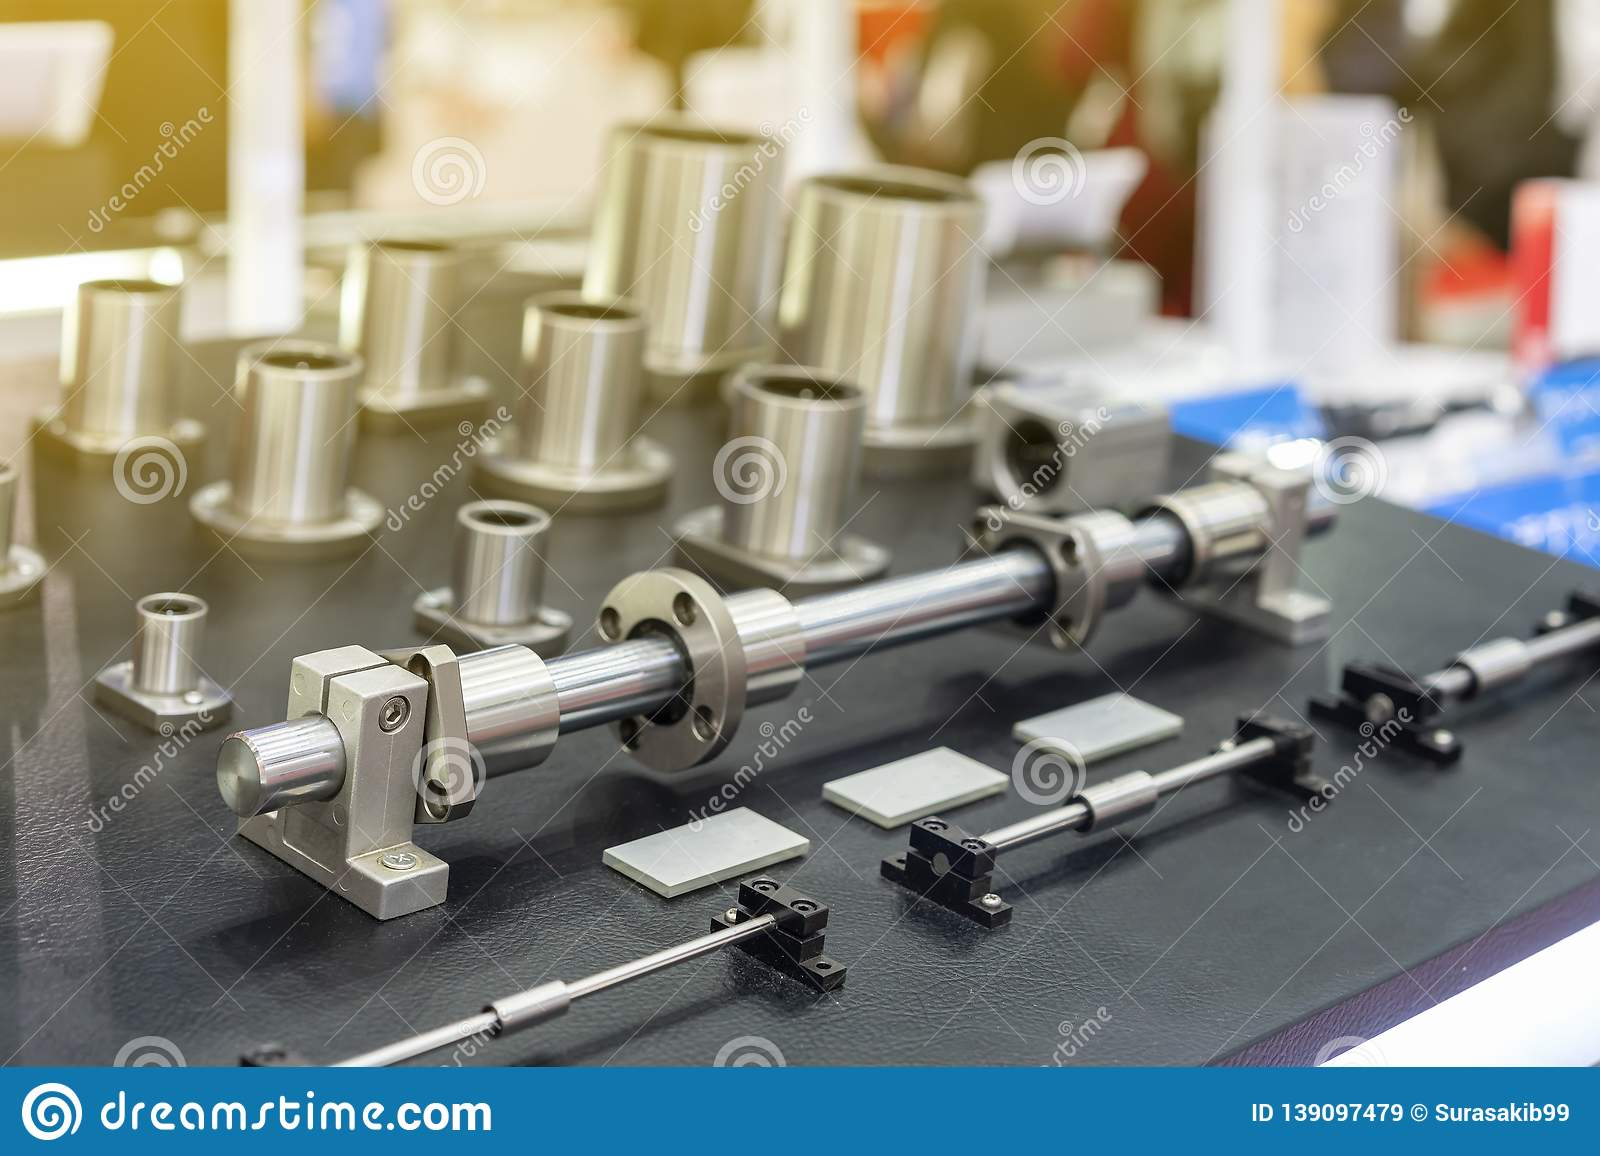 Bearing Machine Many Size Of High Quality And Precision Linear Bushing Drive Or